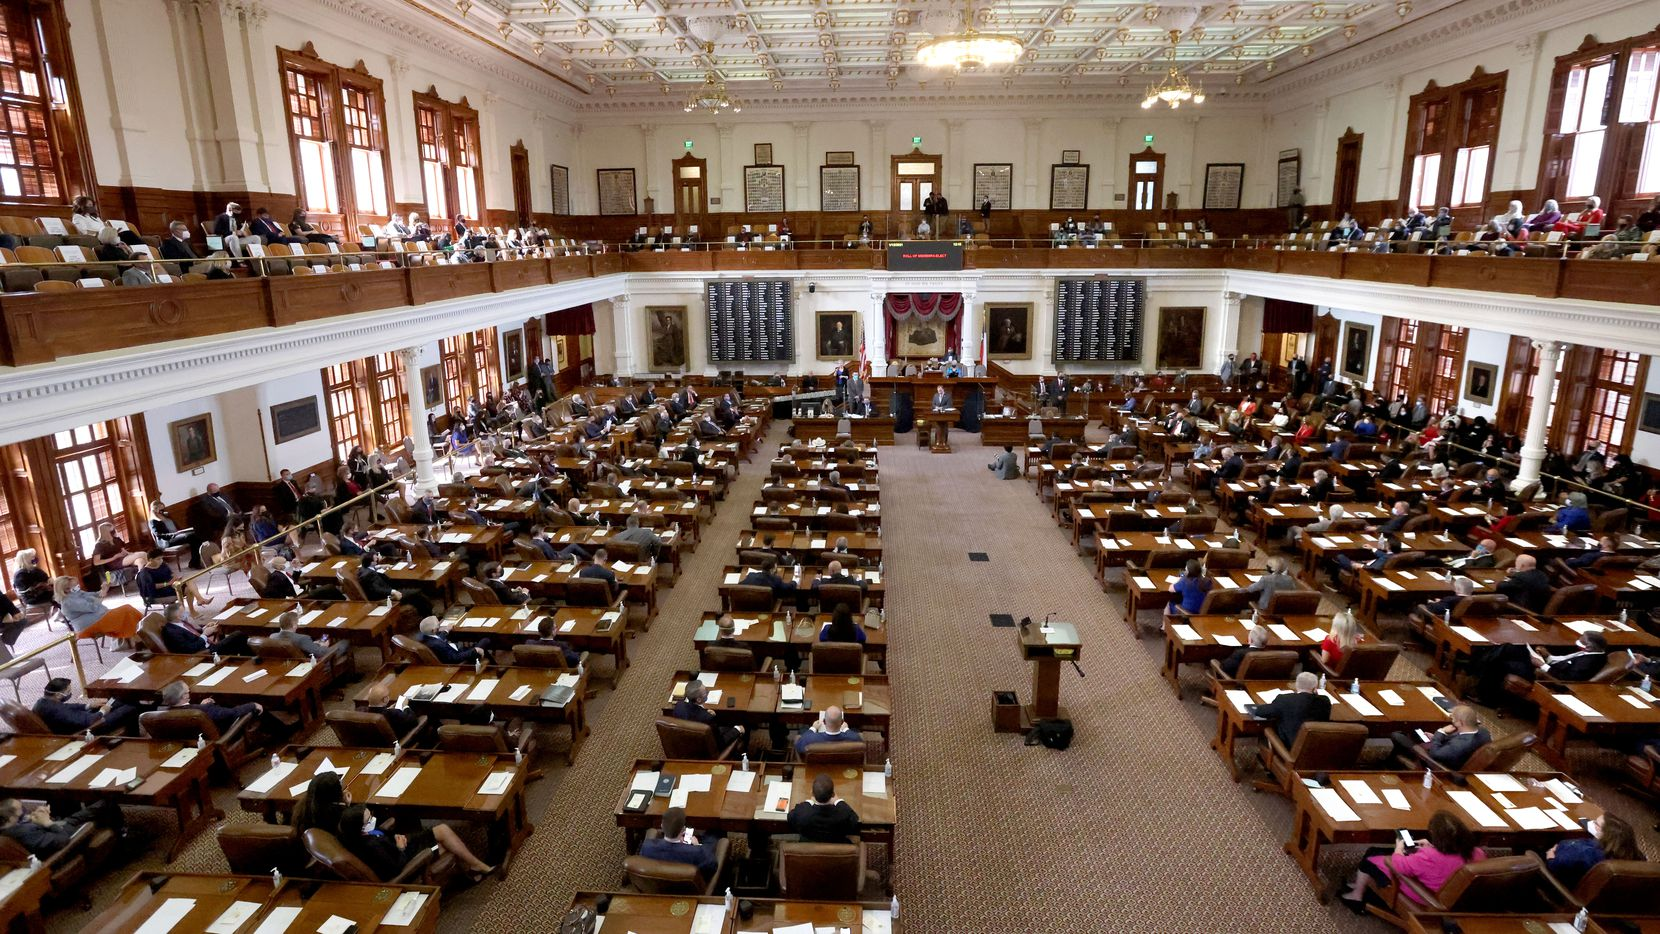 The 87th Texas Legislature is called into session at the Texas Capitol building in Austin on Jan. 12, 2021. (Lynda M. González/The Dallas Morning News)